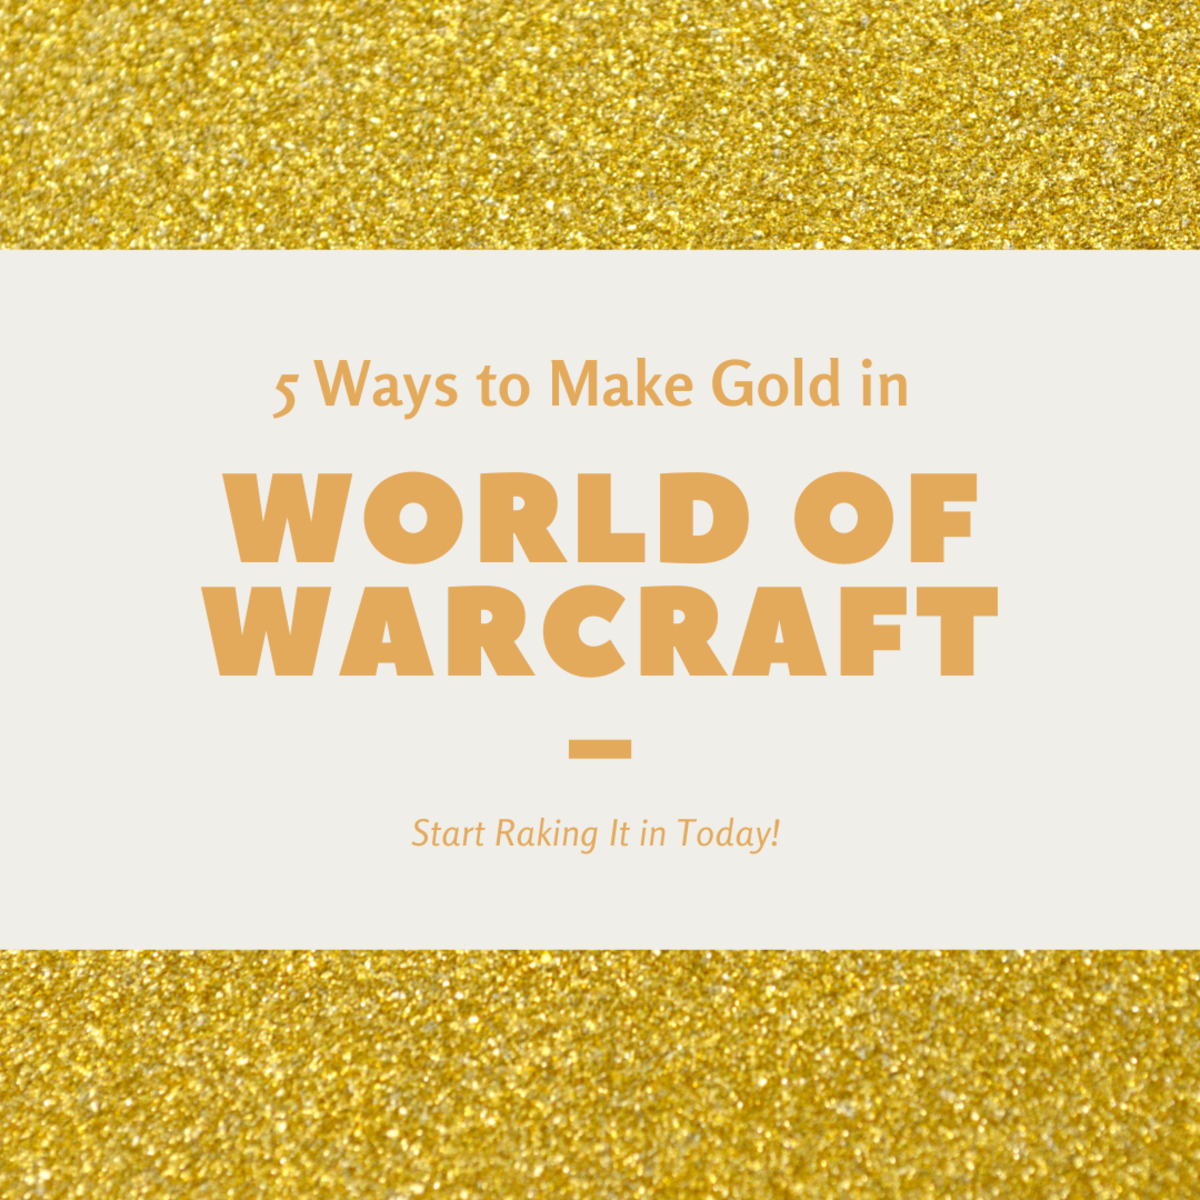 world of warcraft make gold with mining bitcoins